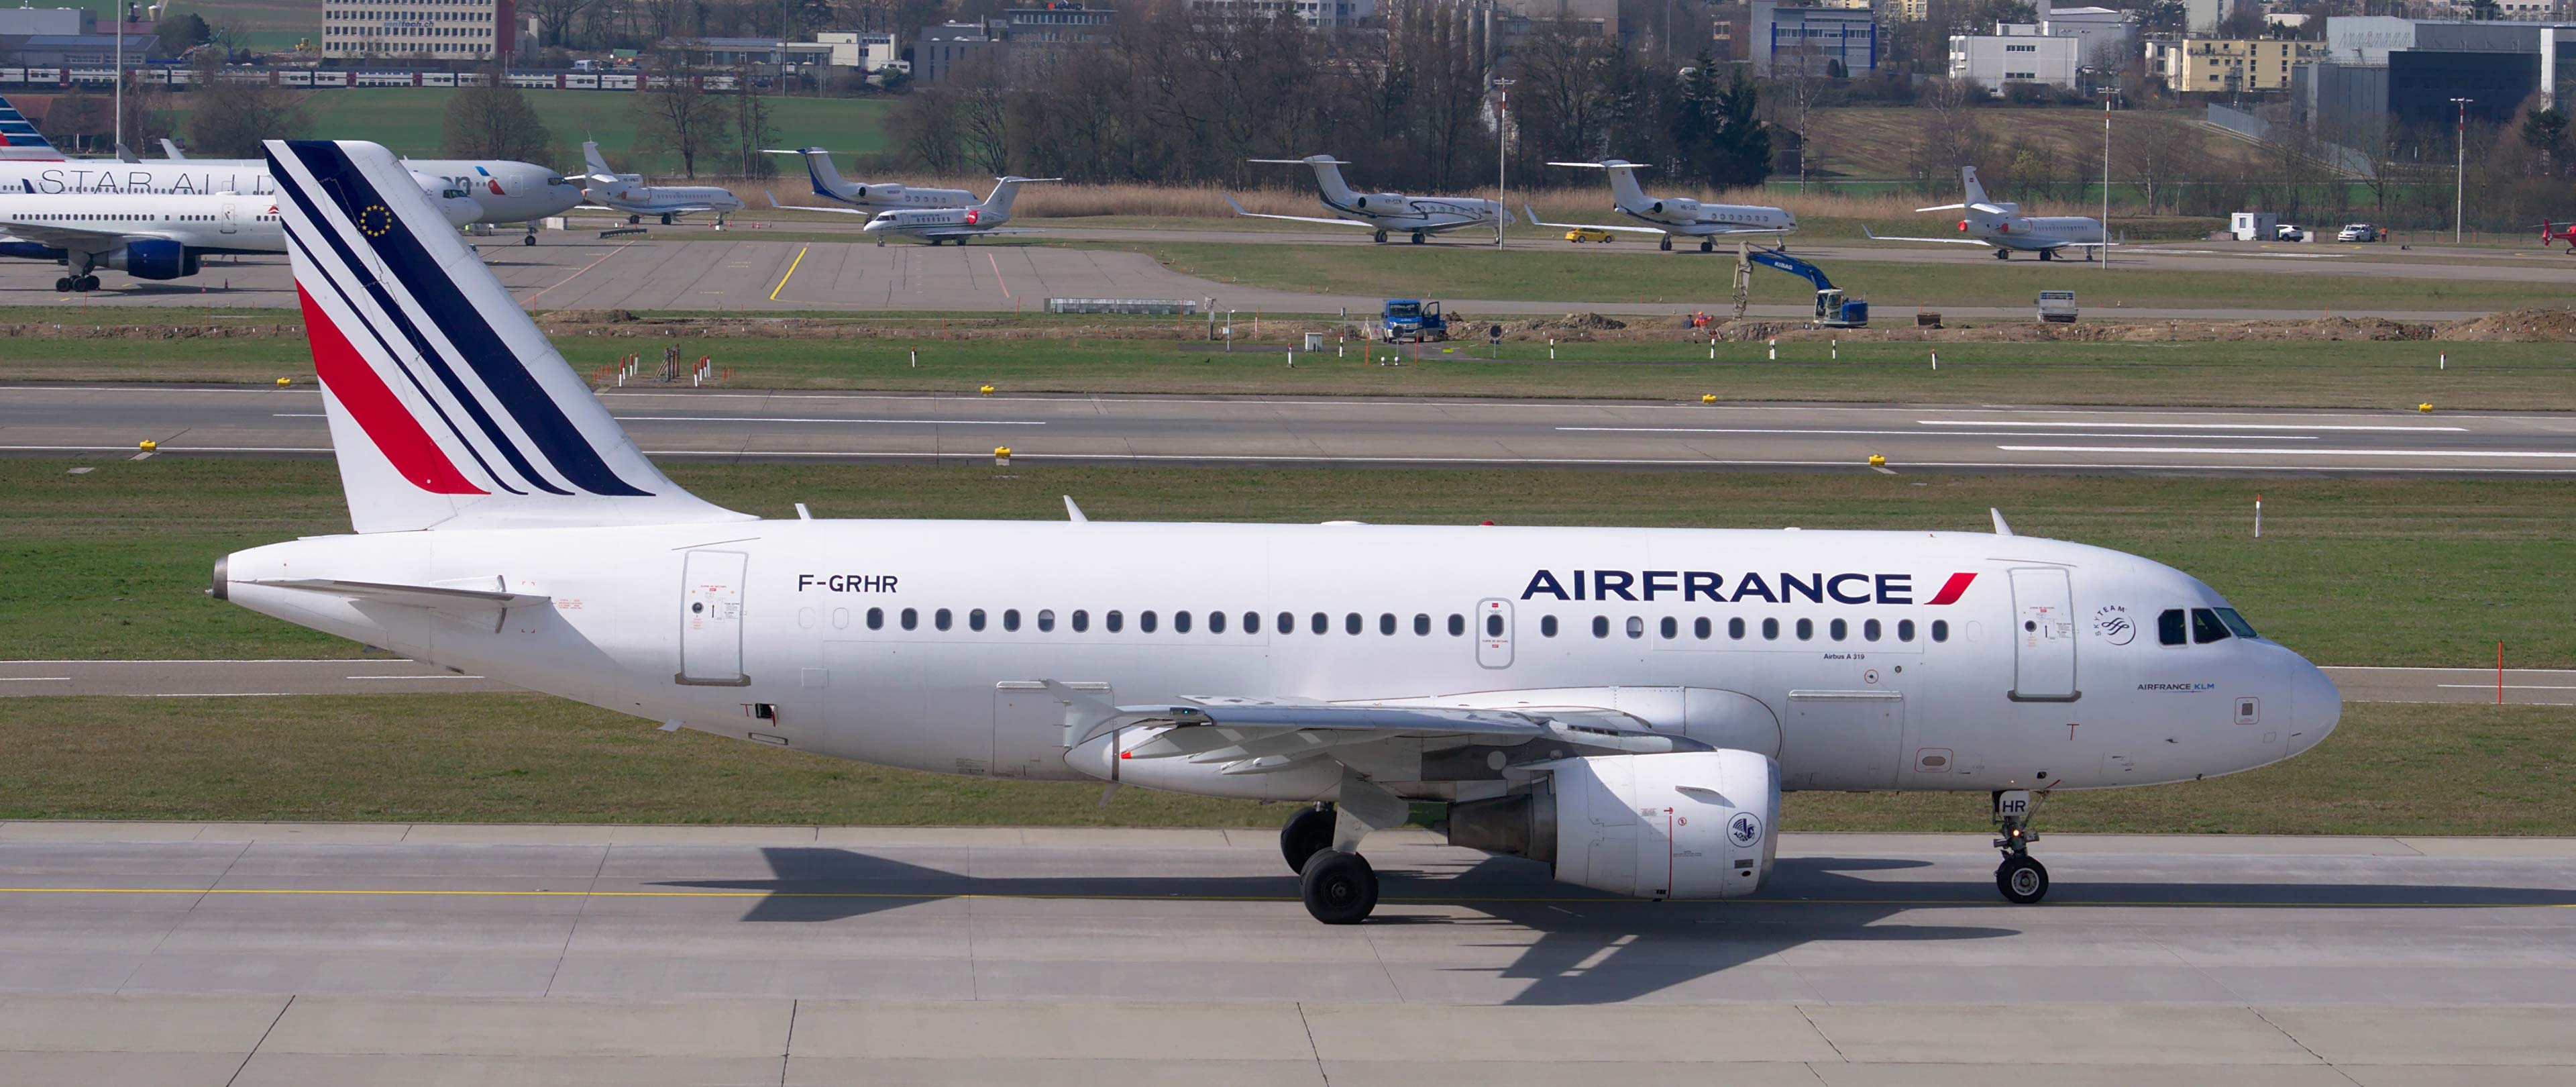 Air France staff call for strike